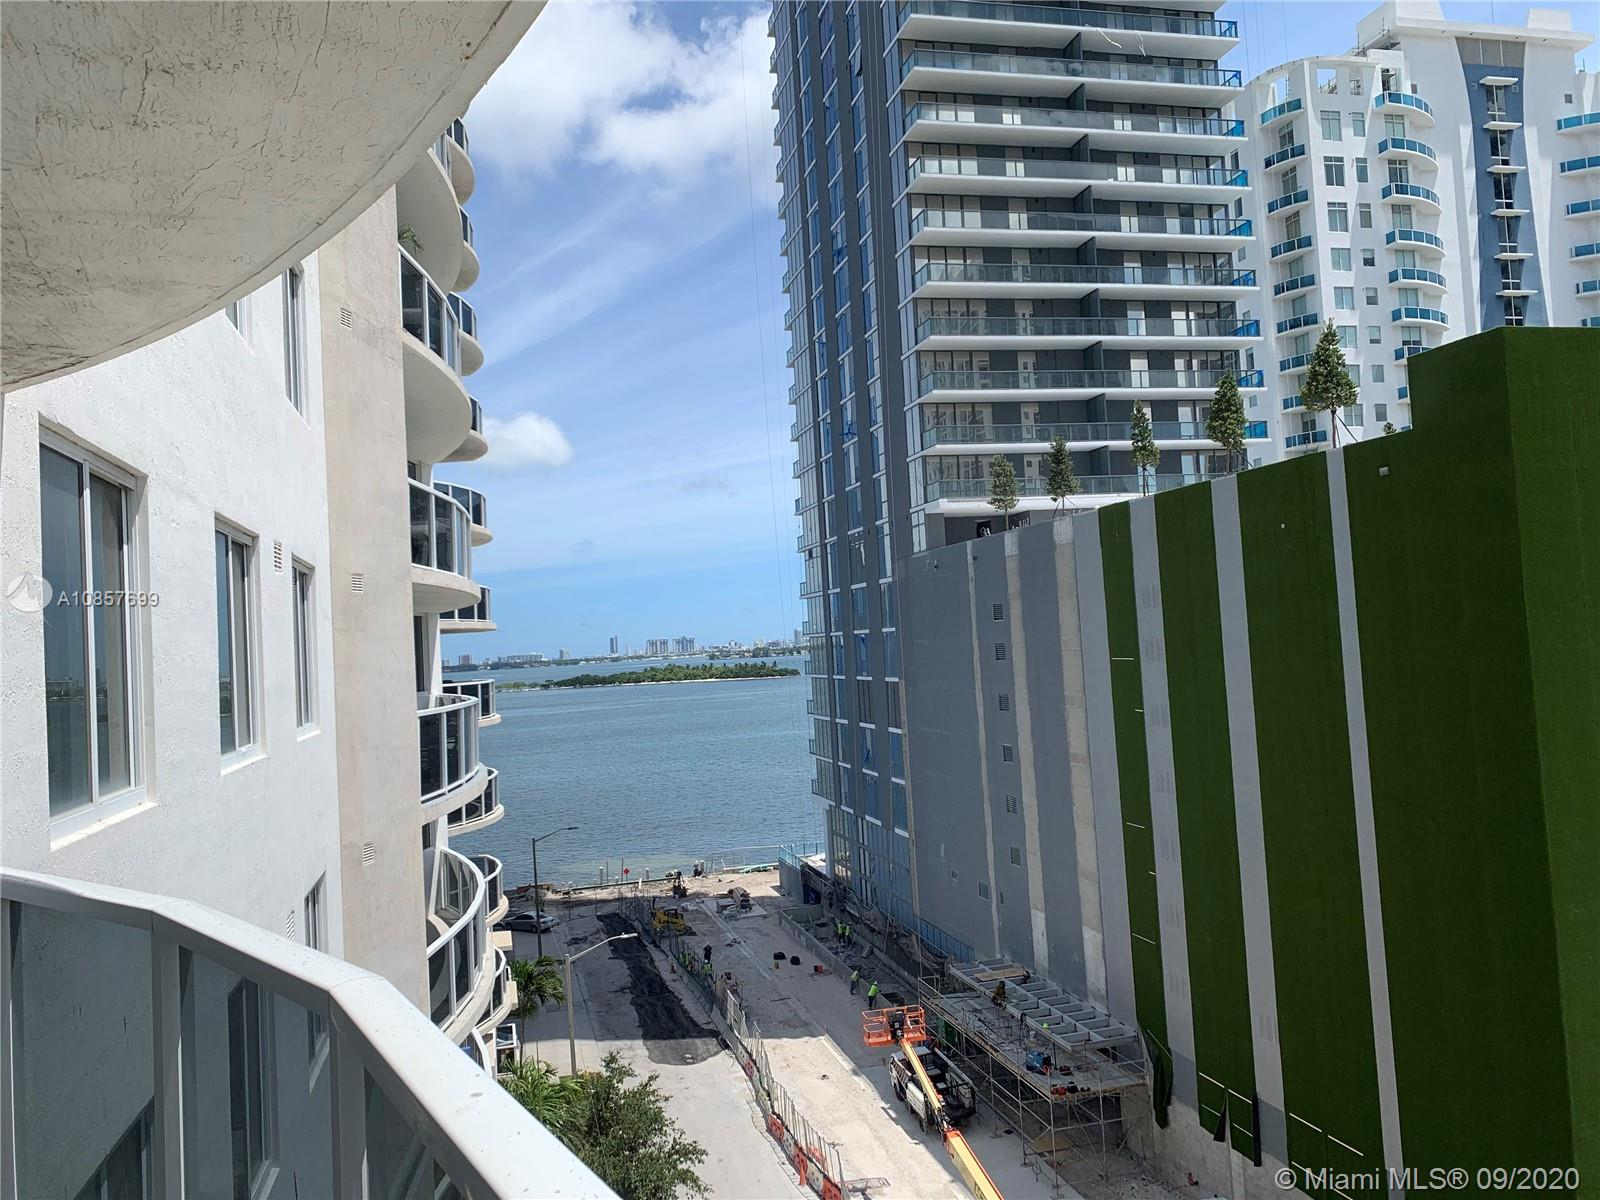 Wonderful furnished 3 bedroom / 2 bathroom unit in the heart of Edgewater! Unit has an amazing floor plan. Enjoy views of the city and the bay! Building is conveniently located and offers easy access to Wynwood, Design District, Downtown, Brickell and several other locations. Amenities include a great gym and pool!